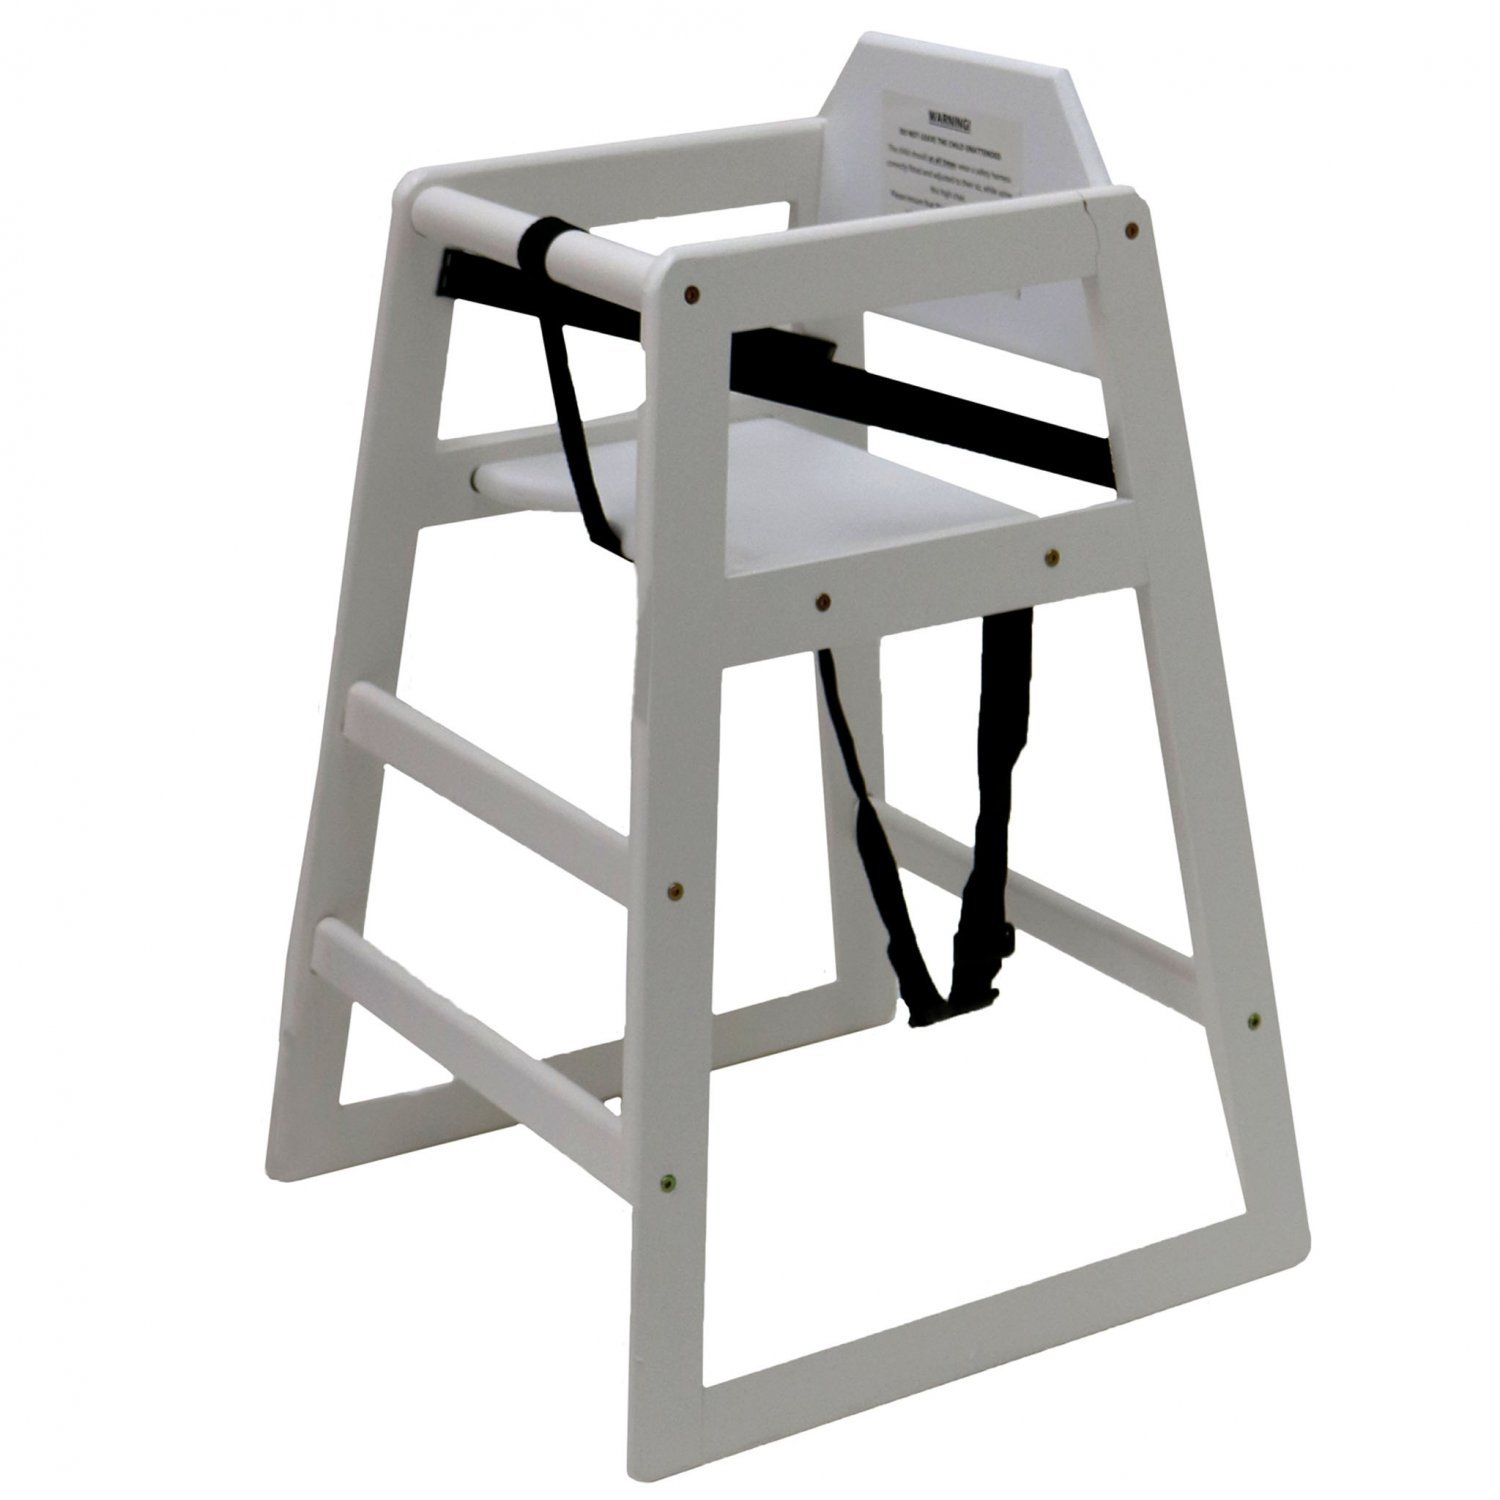 Details about NEW! Stackable Kids Baby Wooden Feeding Commercial Home High Chair White